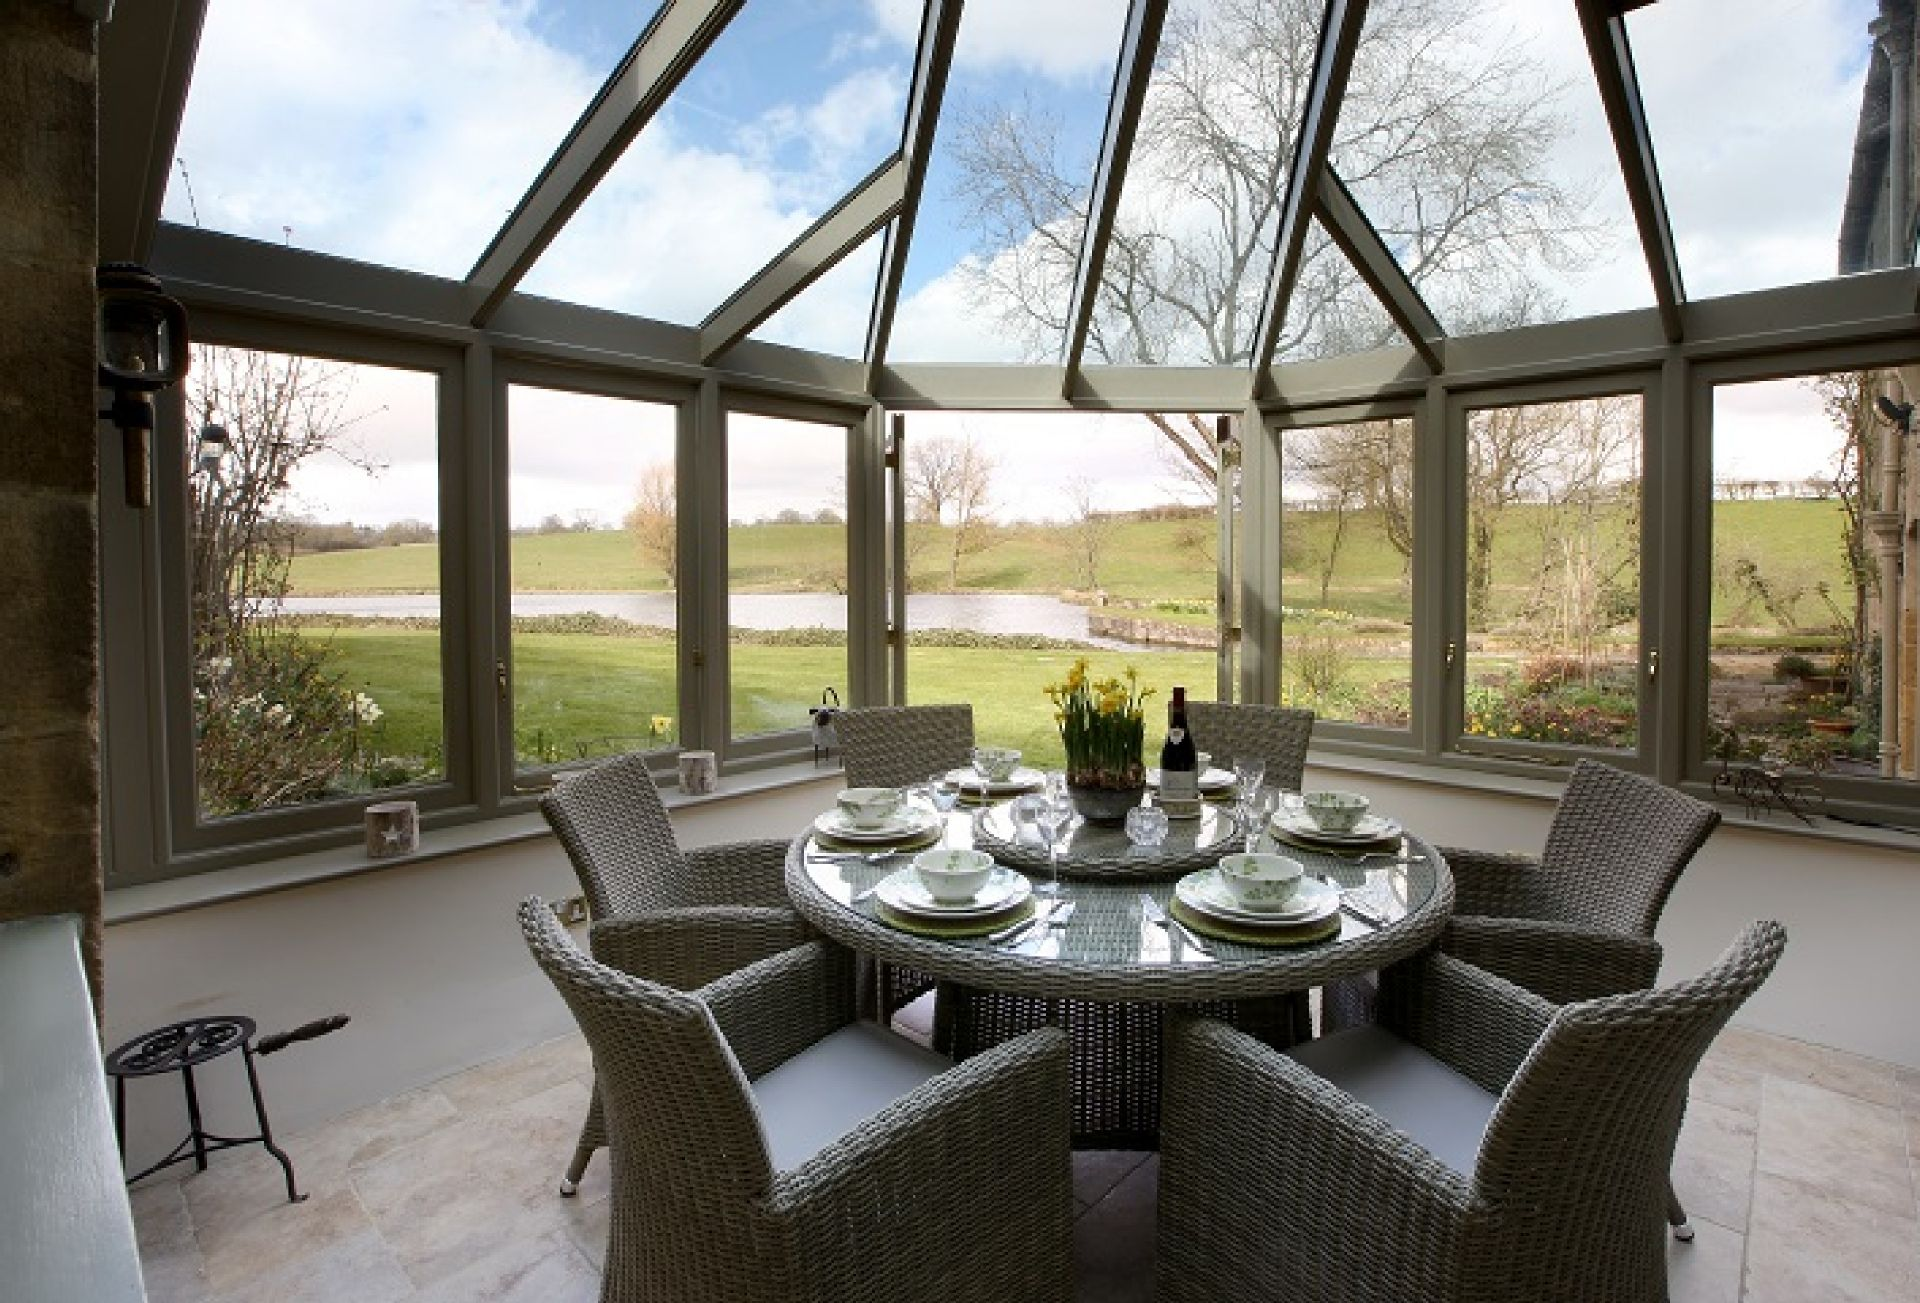 Ground floor: Conservatory dining room with magnificent views